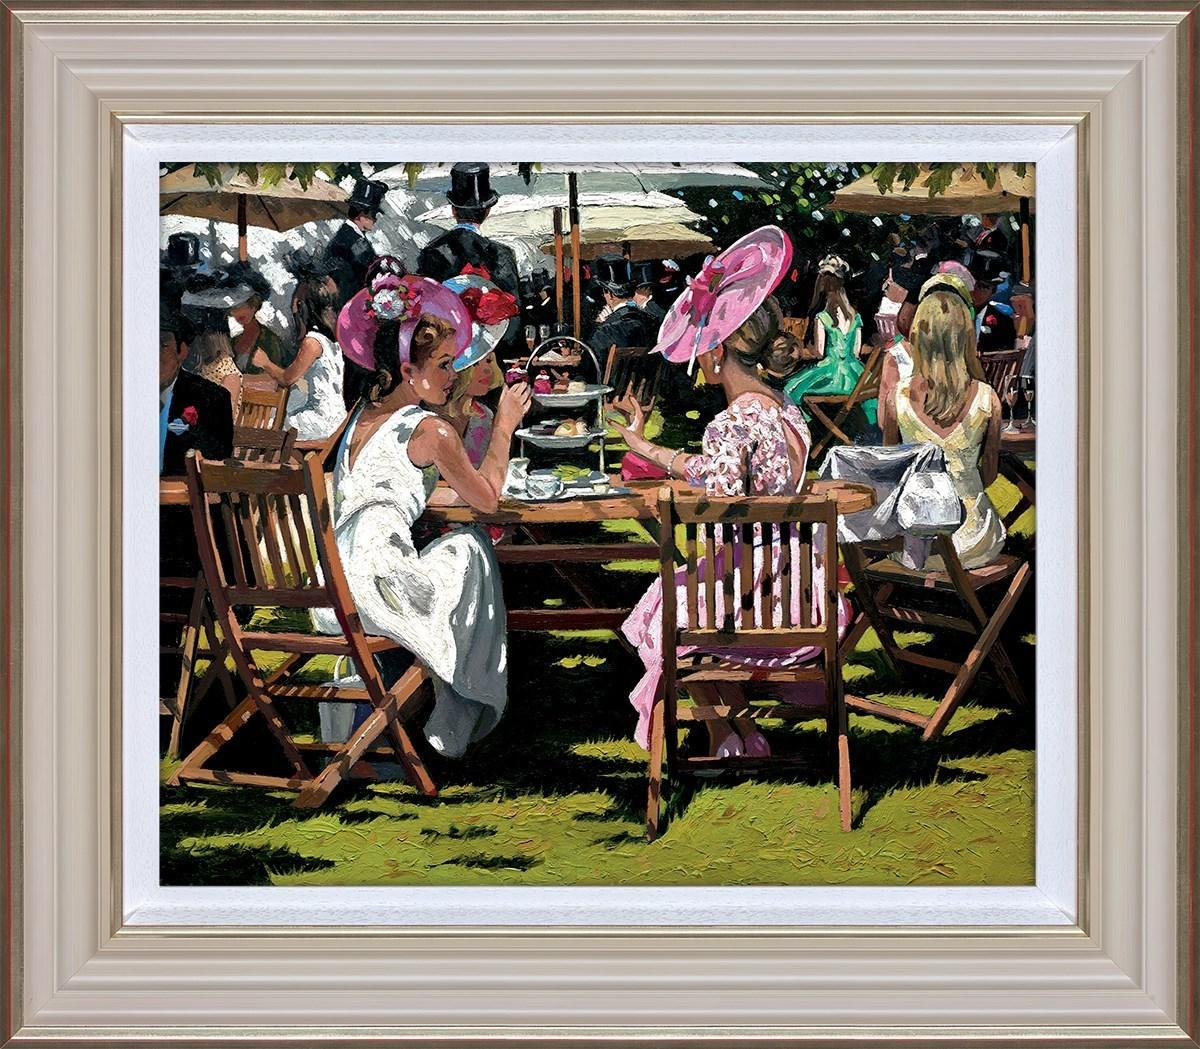 Afternoon Tea at Ascot by Sherree Valentine Daines - art print ZDAI268